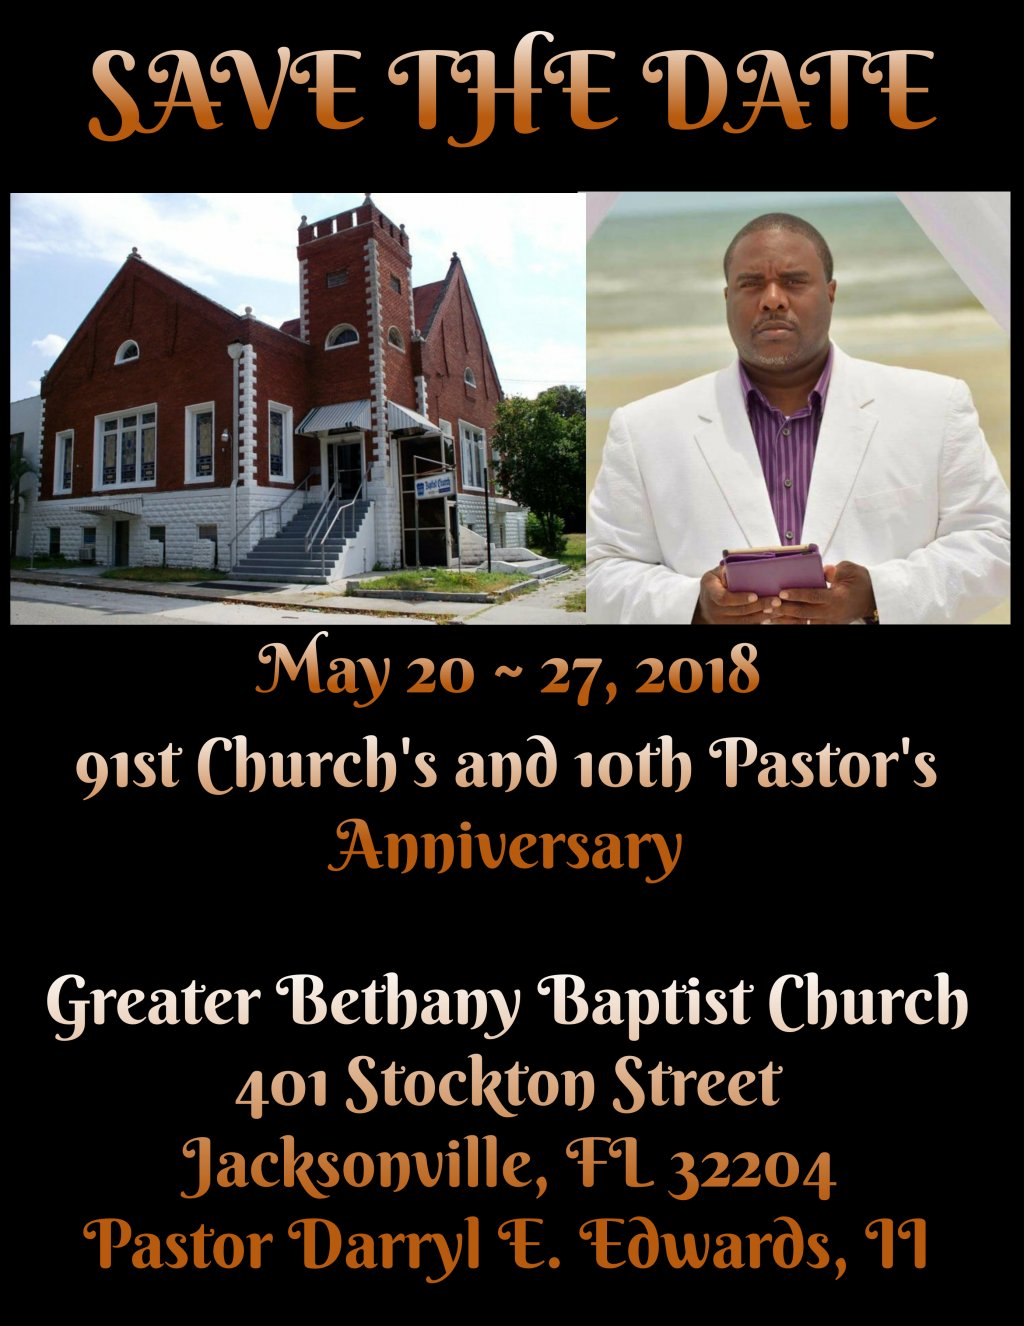 SAVE THE DATE ~ CHURCH AND PASTOR'S ANNIVERSARY KICK OFF!